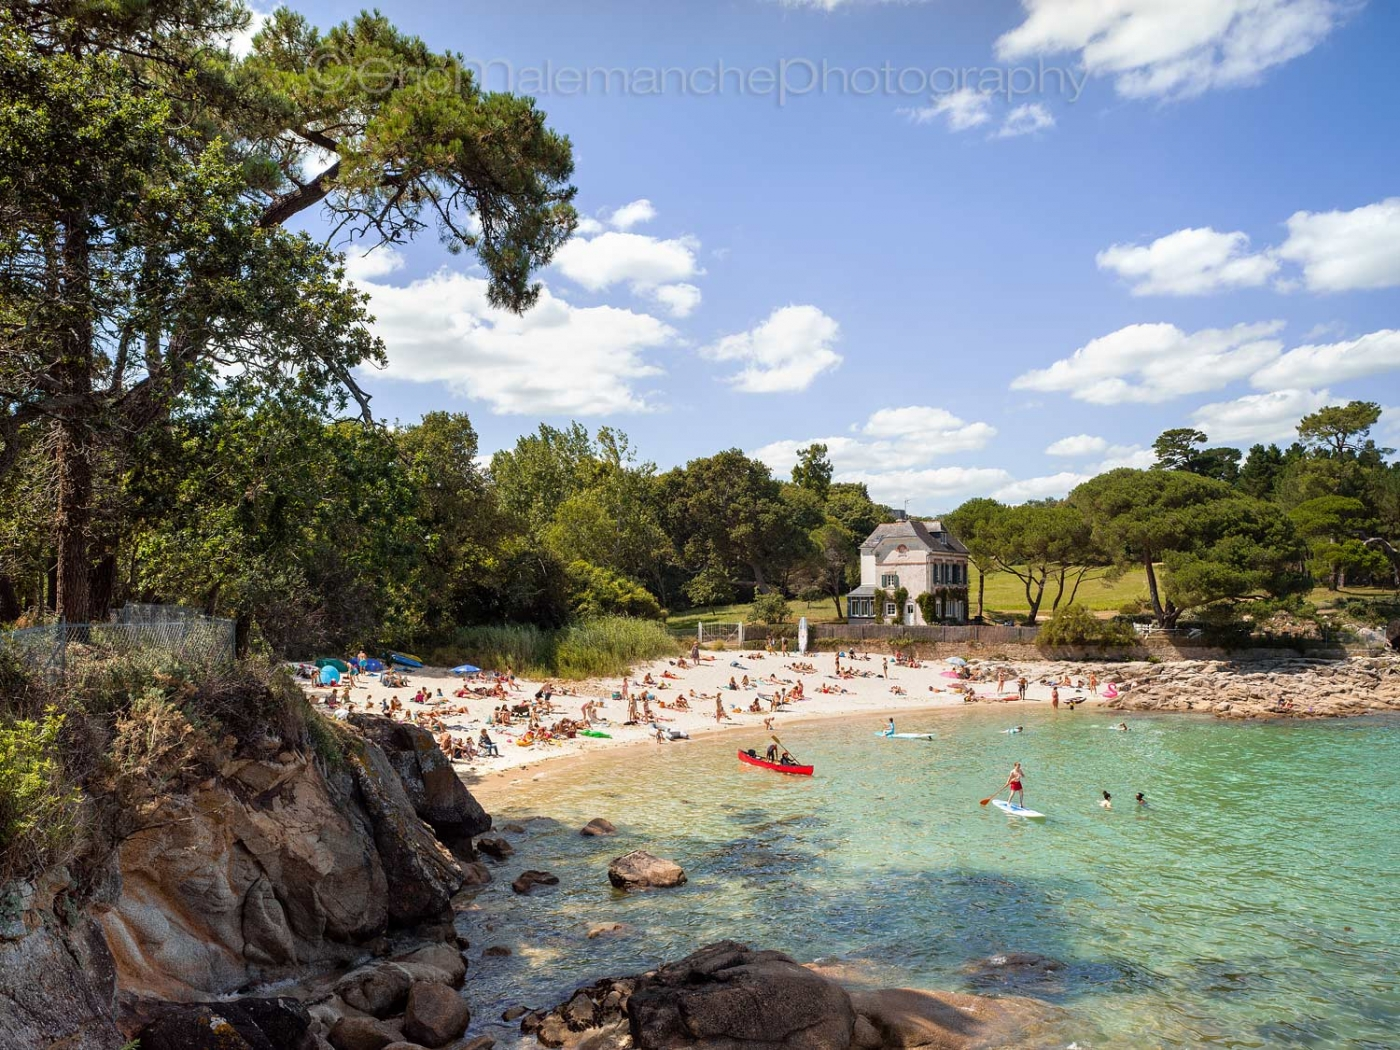 https://www.ericmalemanche.com/imagess/topics/les-conges/liste/Holidays-Brittany.jpg